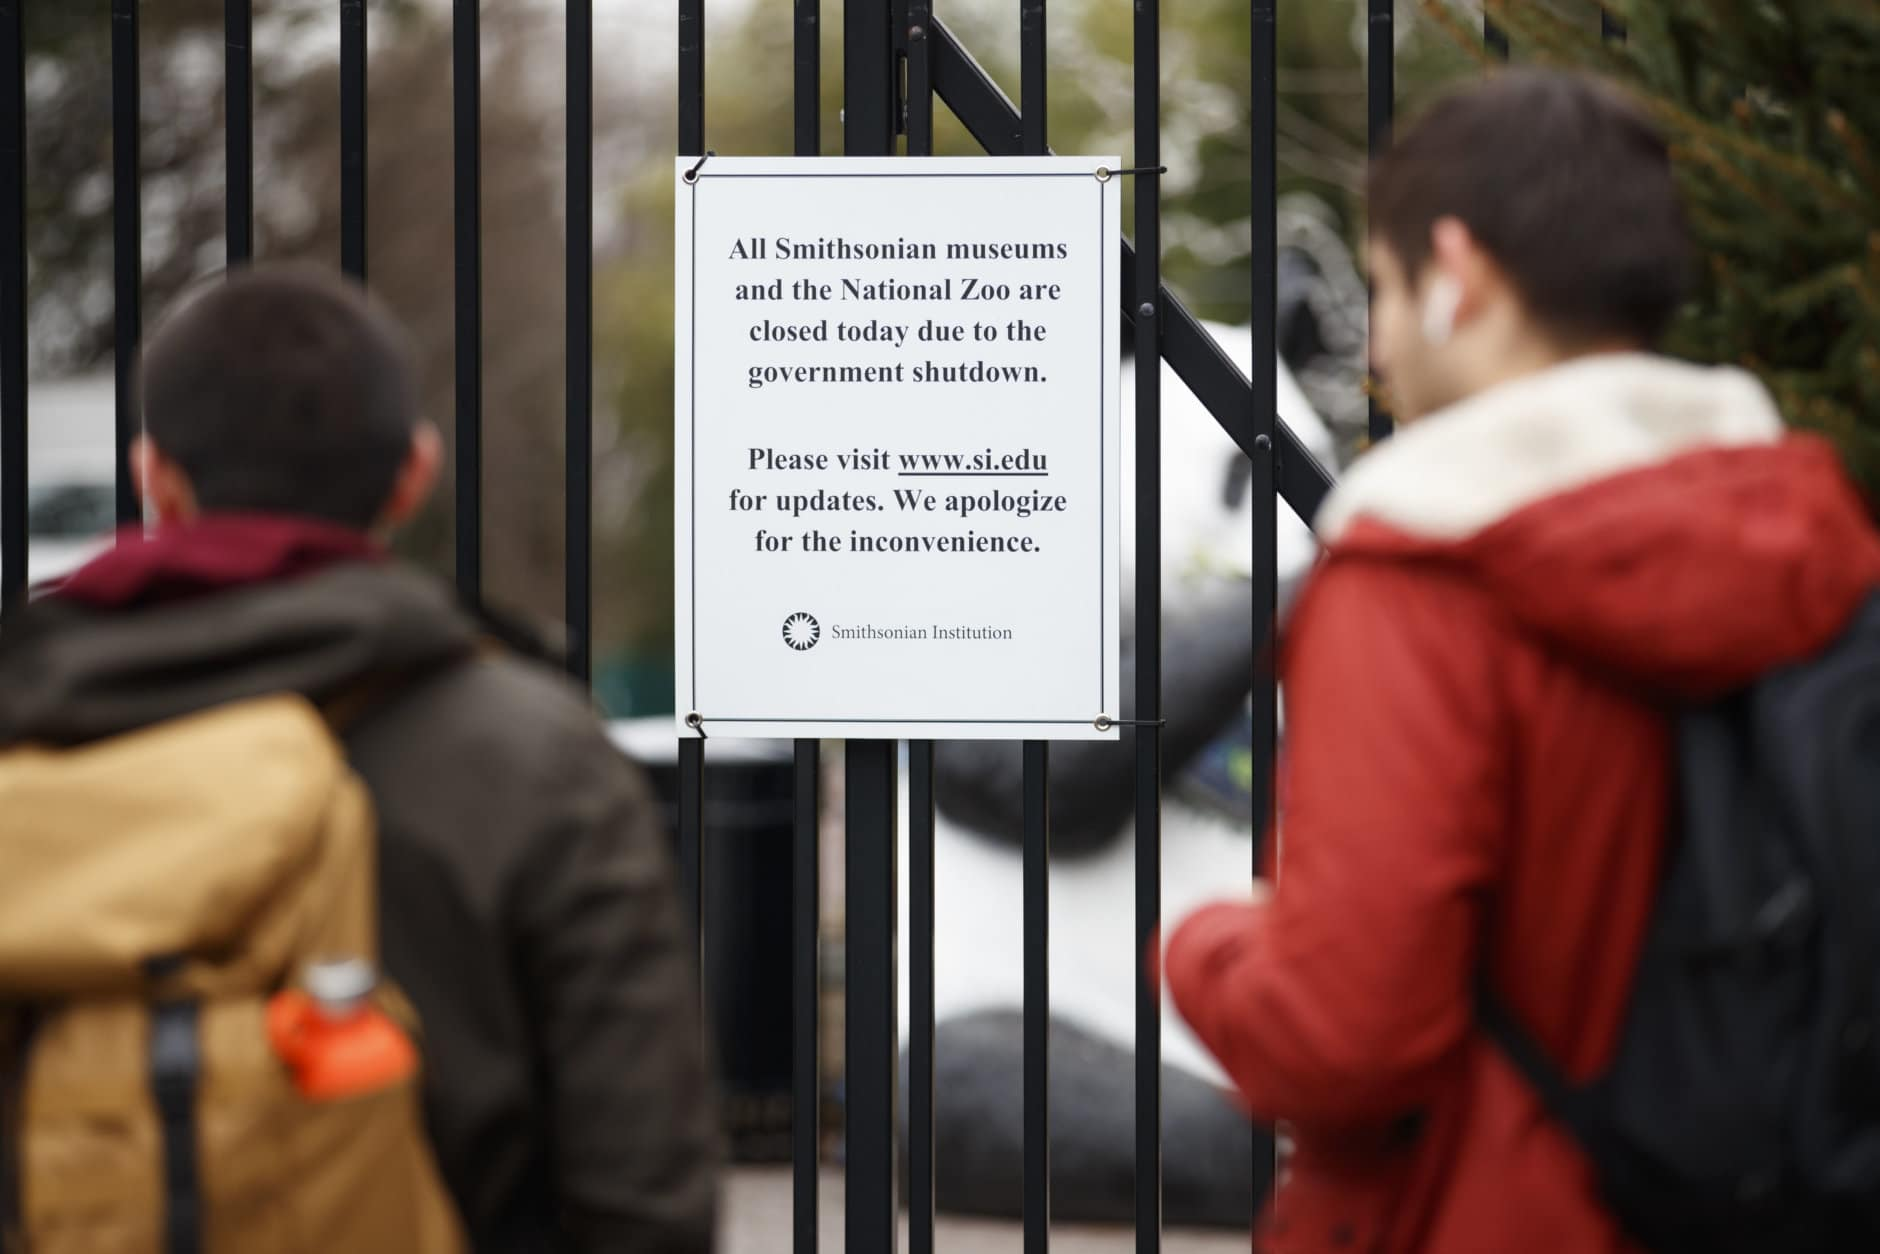 A closed sign is posted on the gate of Smithsonian's National Zoo, Wednesday, Jan. 2, 2019, in Washington. Smithsonian's National Zoo is closed due to the partial government shutdown. President Donald Trump is convening a border security briefing Wednesday for Democratic and Republican congressional leaders as a partial government shutdown over his demand for border wall funding entered its 12th day. (AP Photo/Carolyn Kaster)